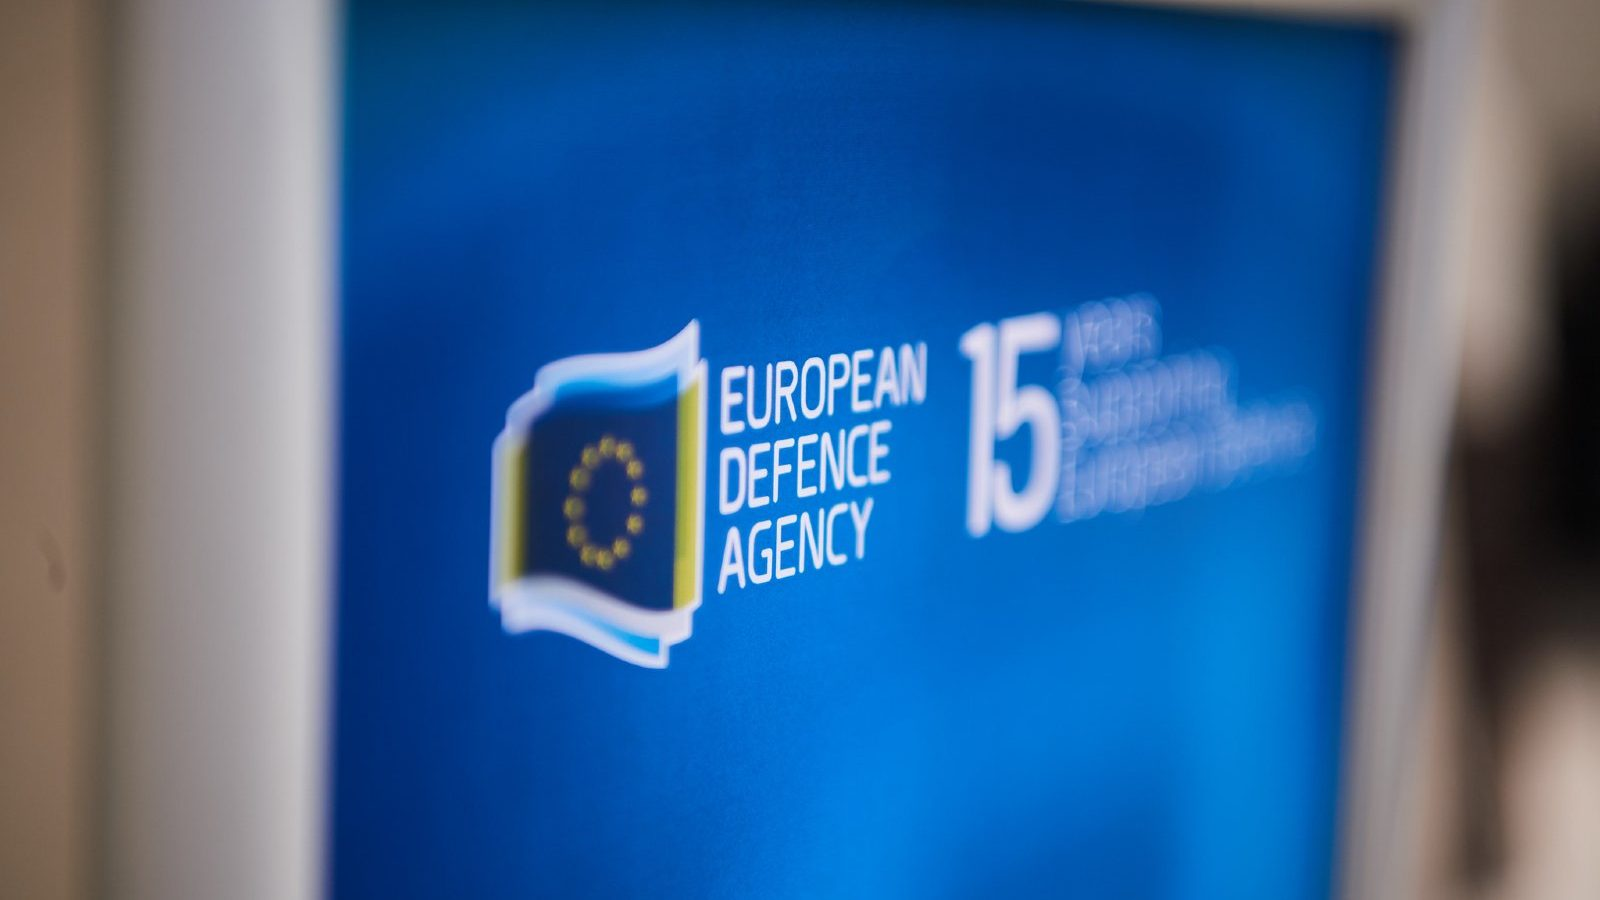 On 25 June, EDA celebrated its 15th Anniversary with a ceremony in its premises attended by the Head of the Agency, Federica Mogherini, high representatives (Ministers, Deputy Ministers, State Secretaries, Chiefs of Defence, Ambassadors) from its 27 Member States and the four associated countries, the Chairman of the EU Military Committee, Deputy Secretary-Generals of the EEAS, the Director General of the EU Military Staff, a European Commissioner and Commission Director-Generals, Executive Directors and senior officials of all EU institutions and agencies, NATO senior representatives as well representatives from the European defence industry and the media.     Copyright all pictures @European Defence Agency, 2019